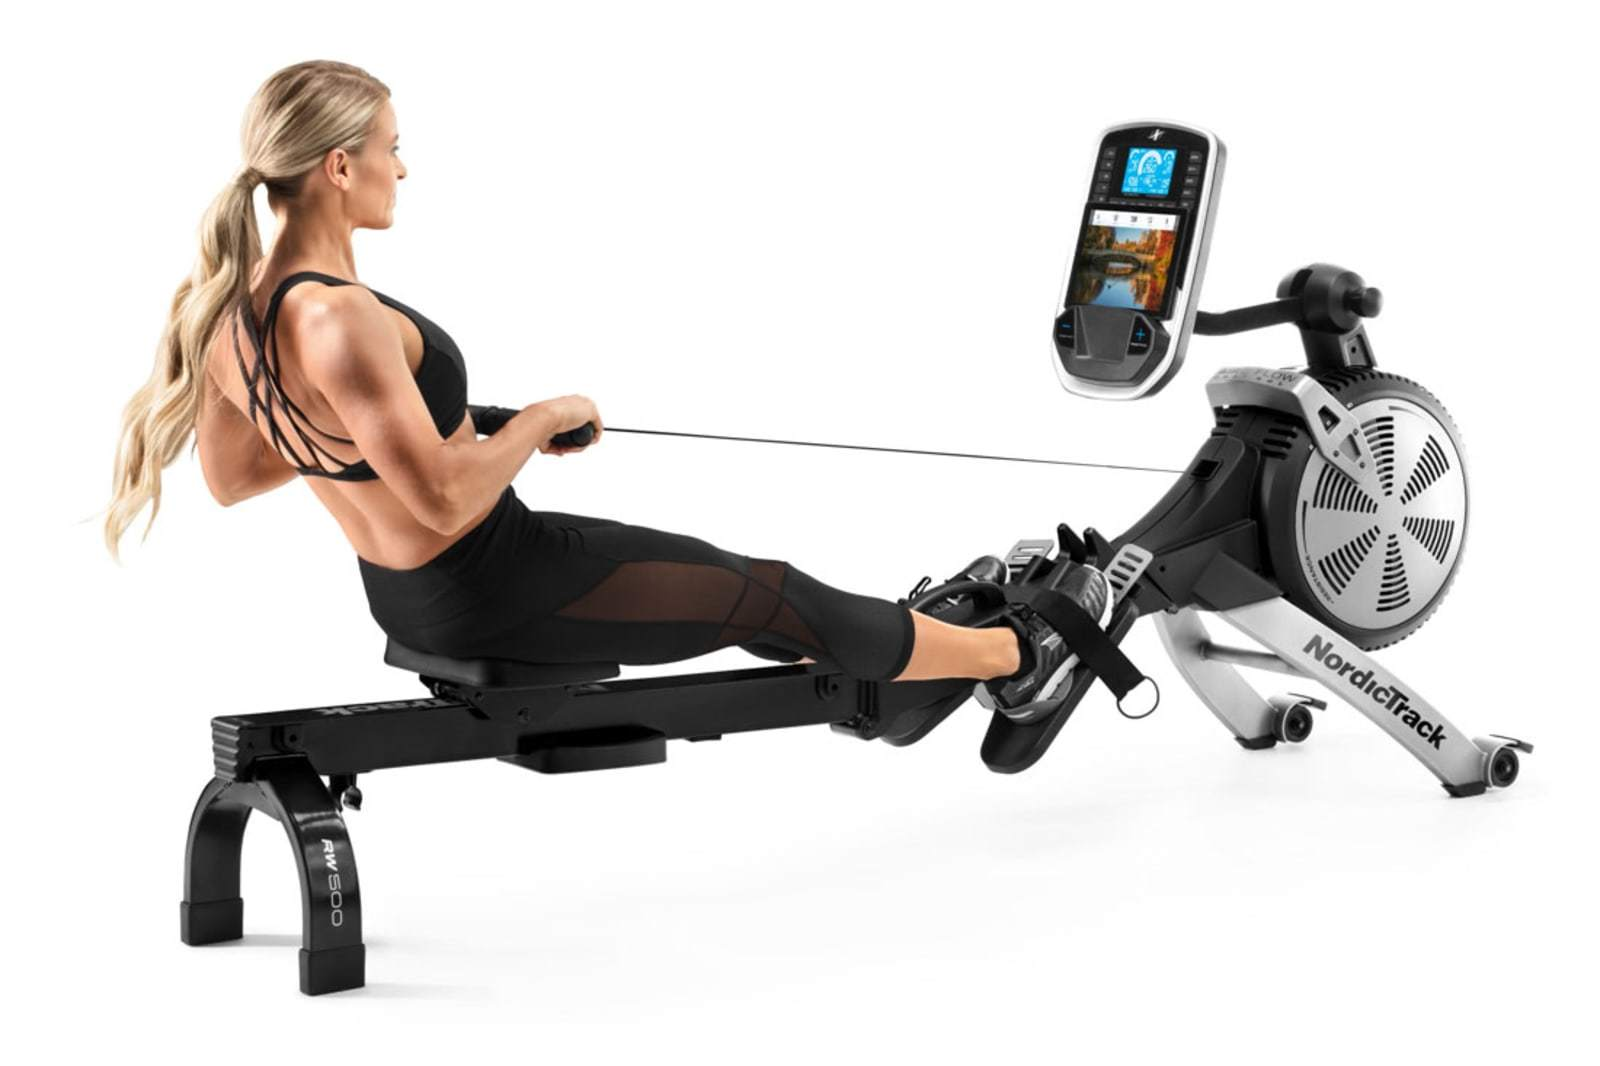 NordicTrack RW500 Rower_2